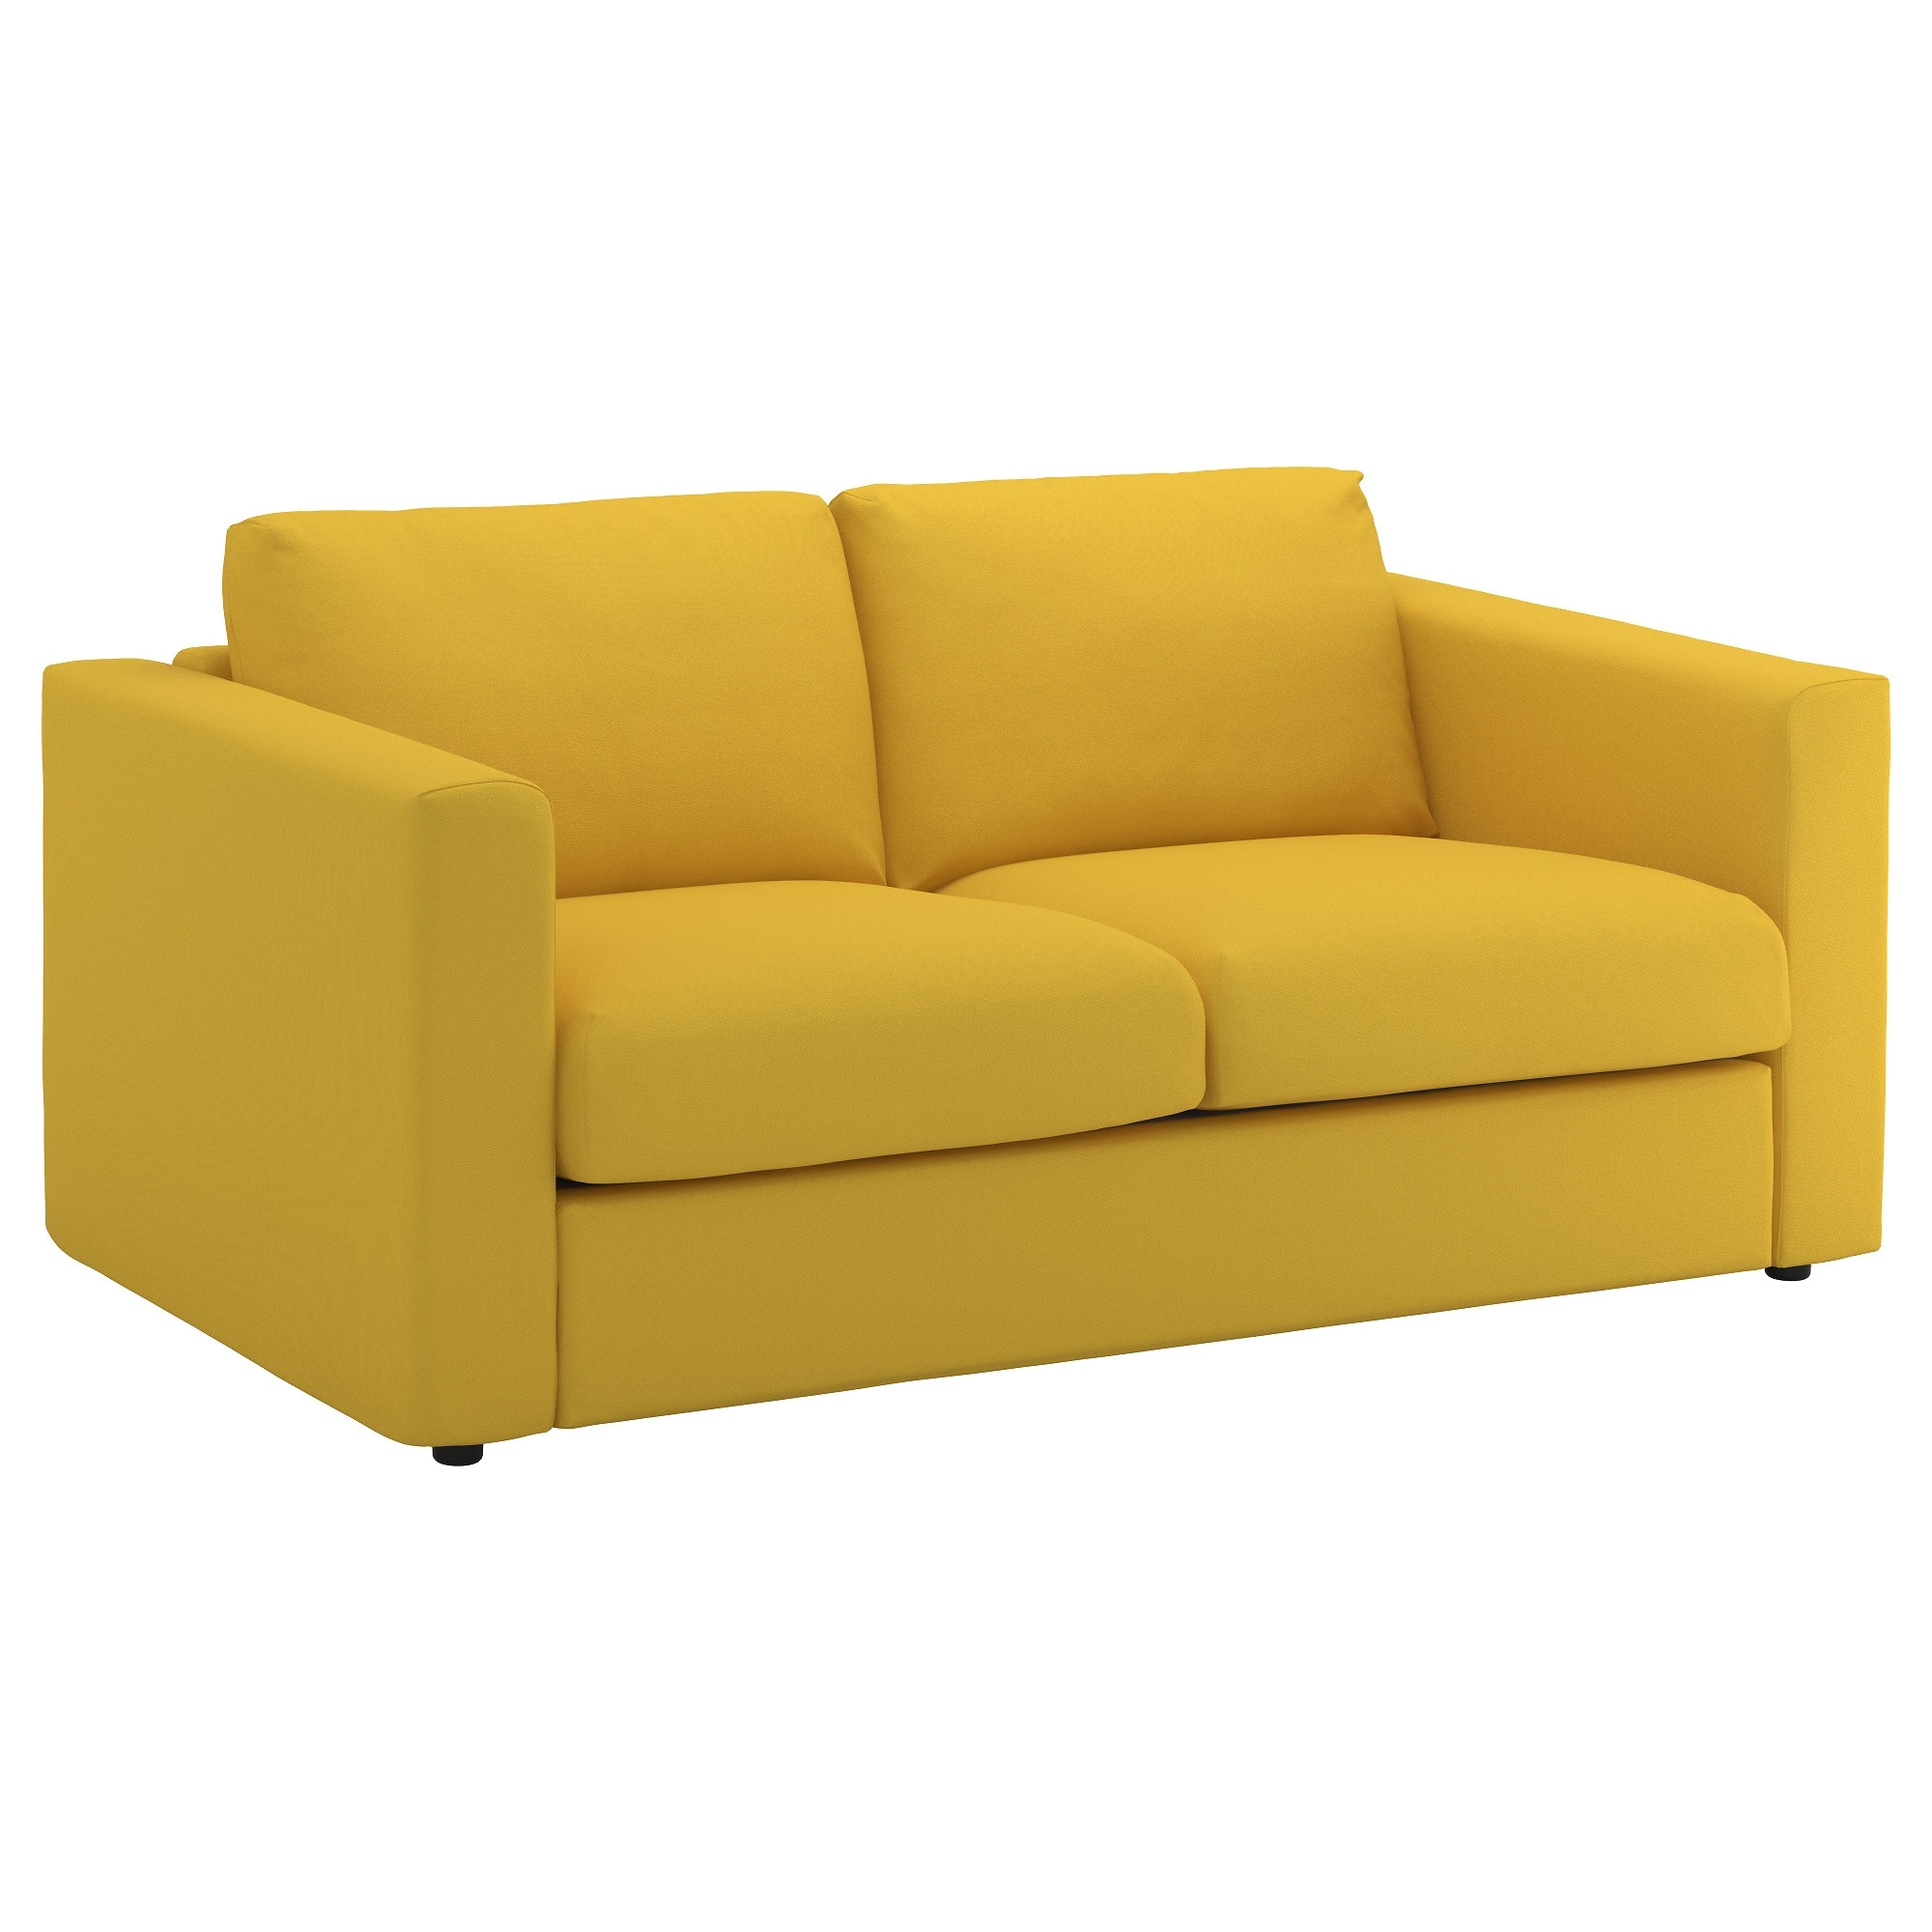 Vimle 2 Seat Sofa Gräsbo Golden Yellow – Ikea Inside Favorite Ikea Two Seater Sofas (View 8 of 15)